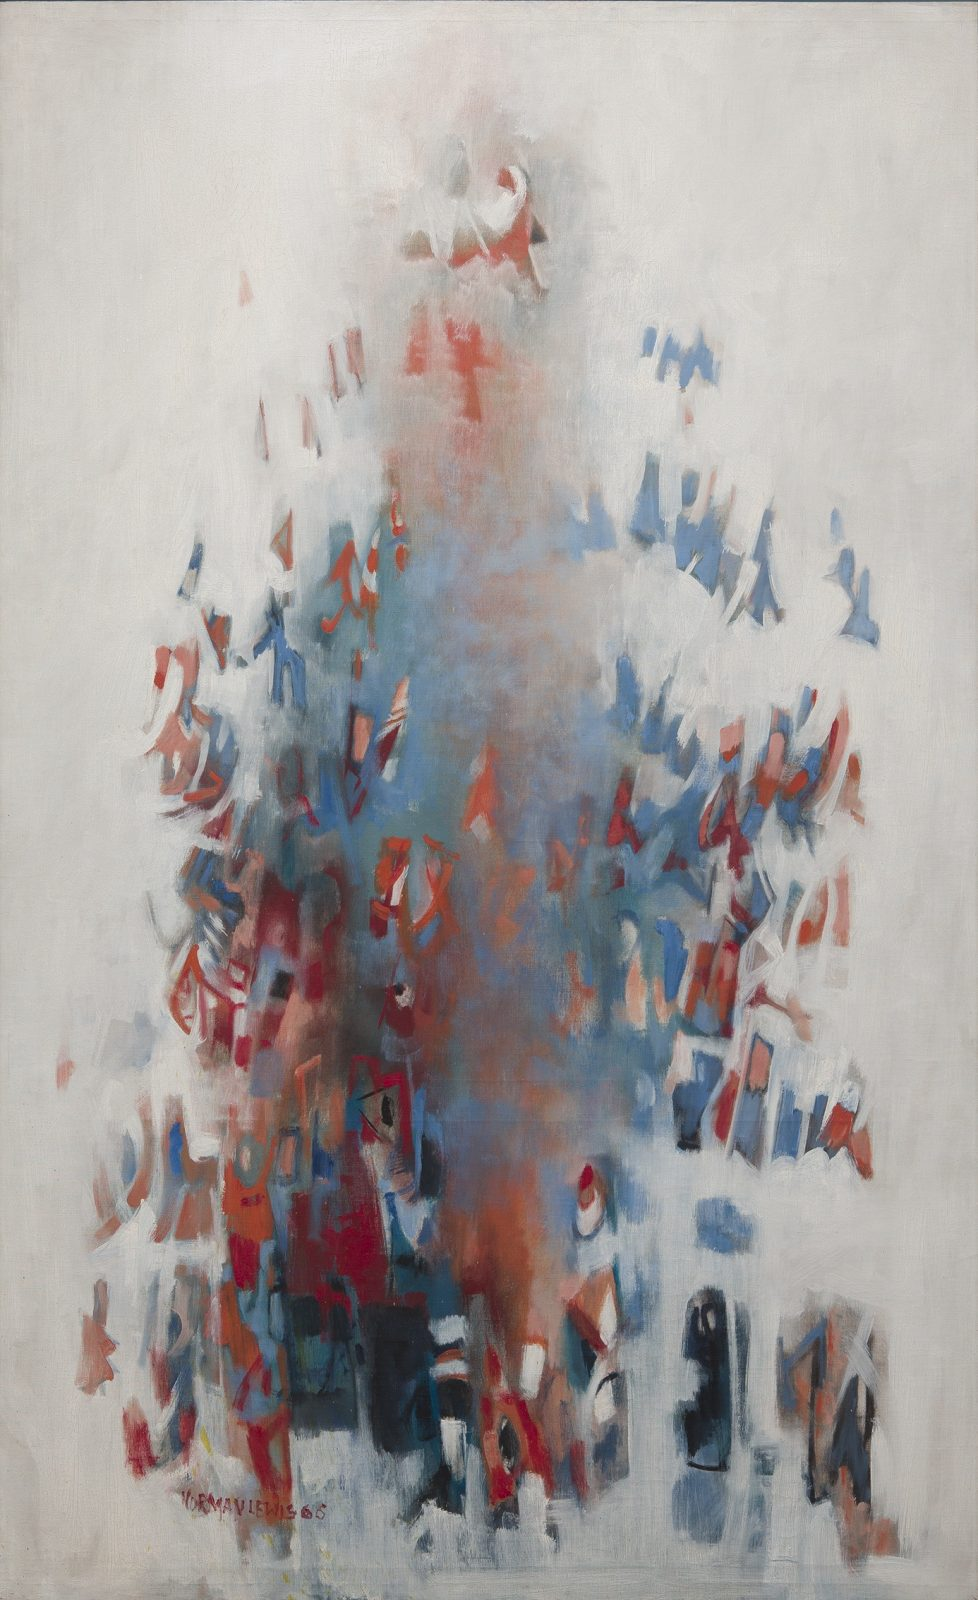 This work by Norman Wilfred Lewis is an abstract composition in white, red and blue